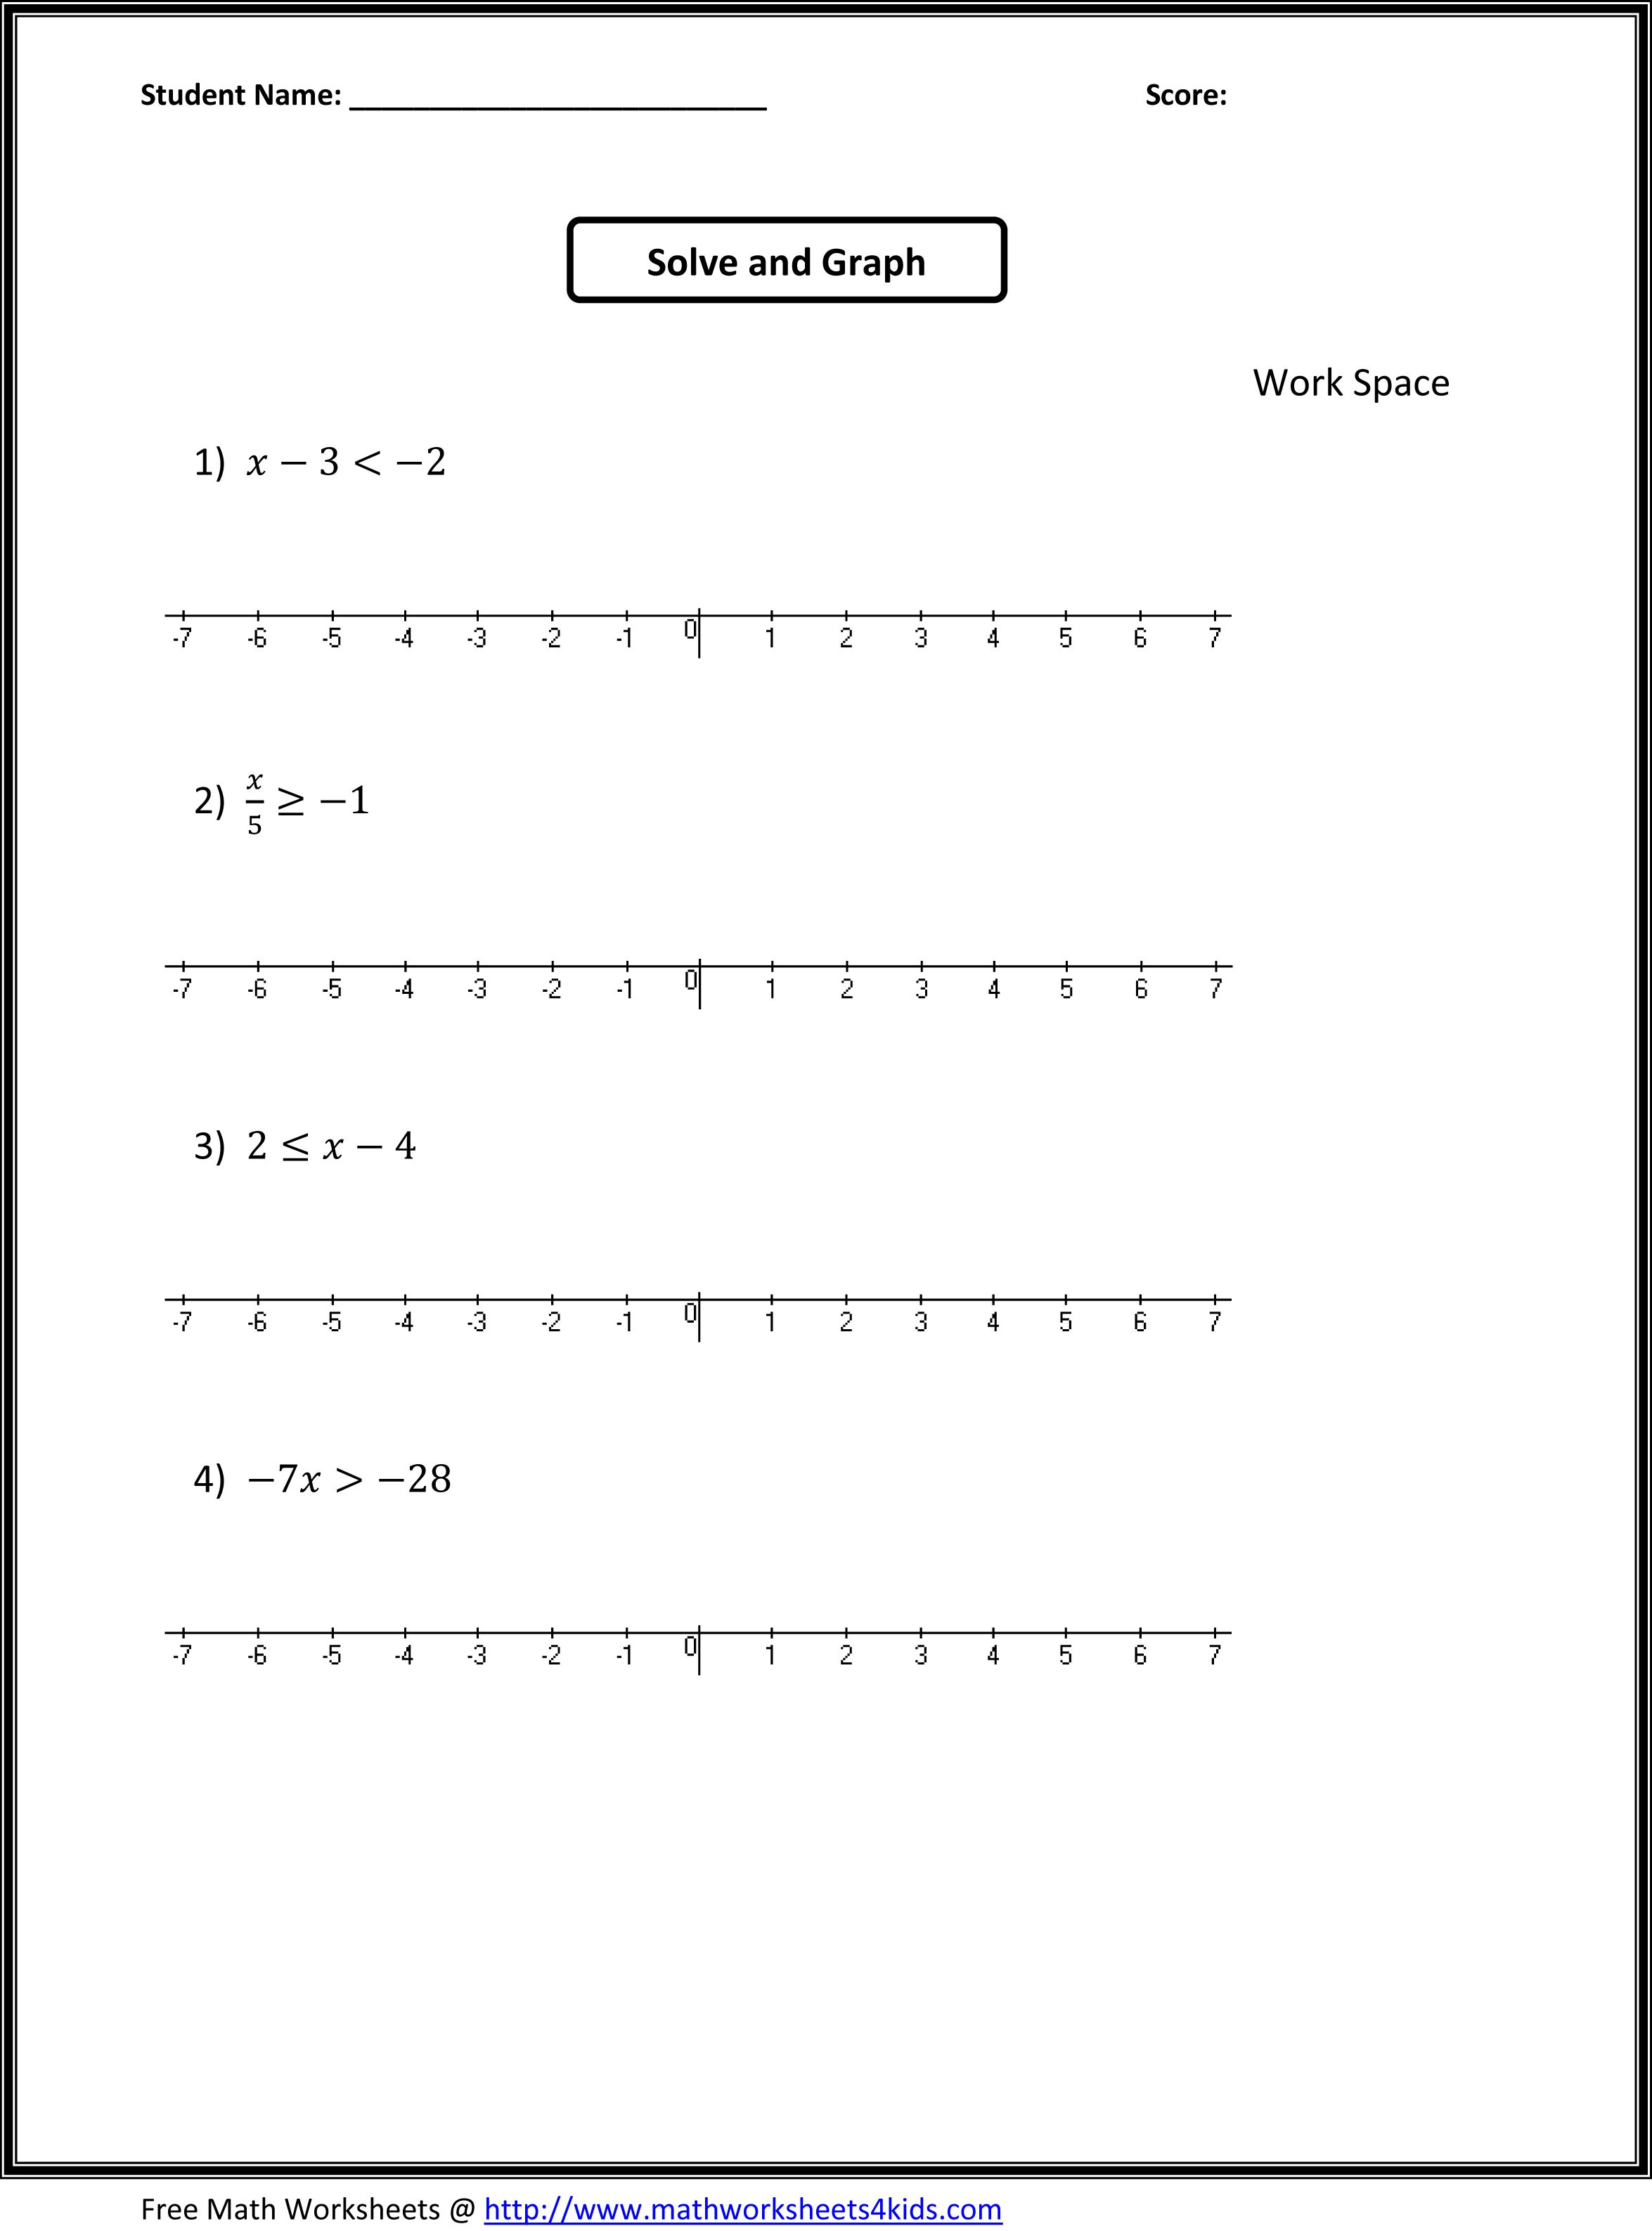 Worksheets 6th Grade Math Worksheets Algebra 7th grade algebra worksheets math places worksheets